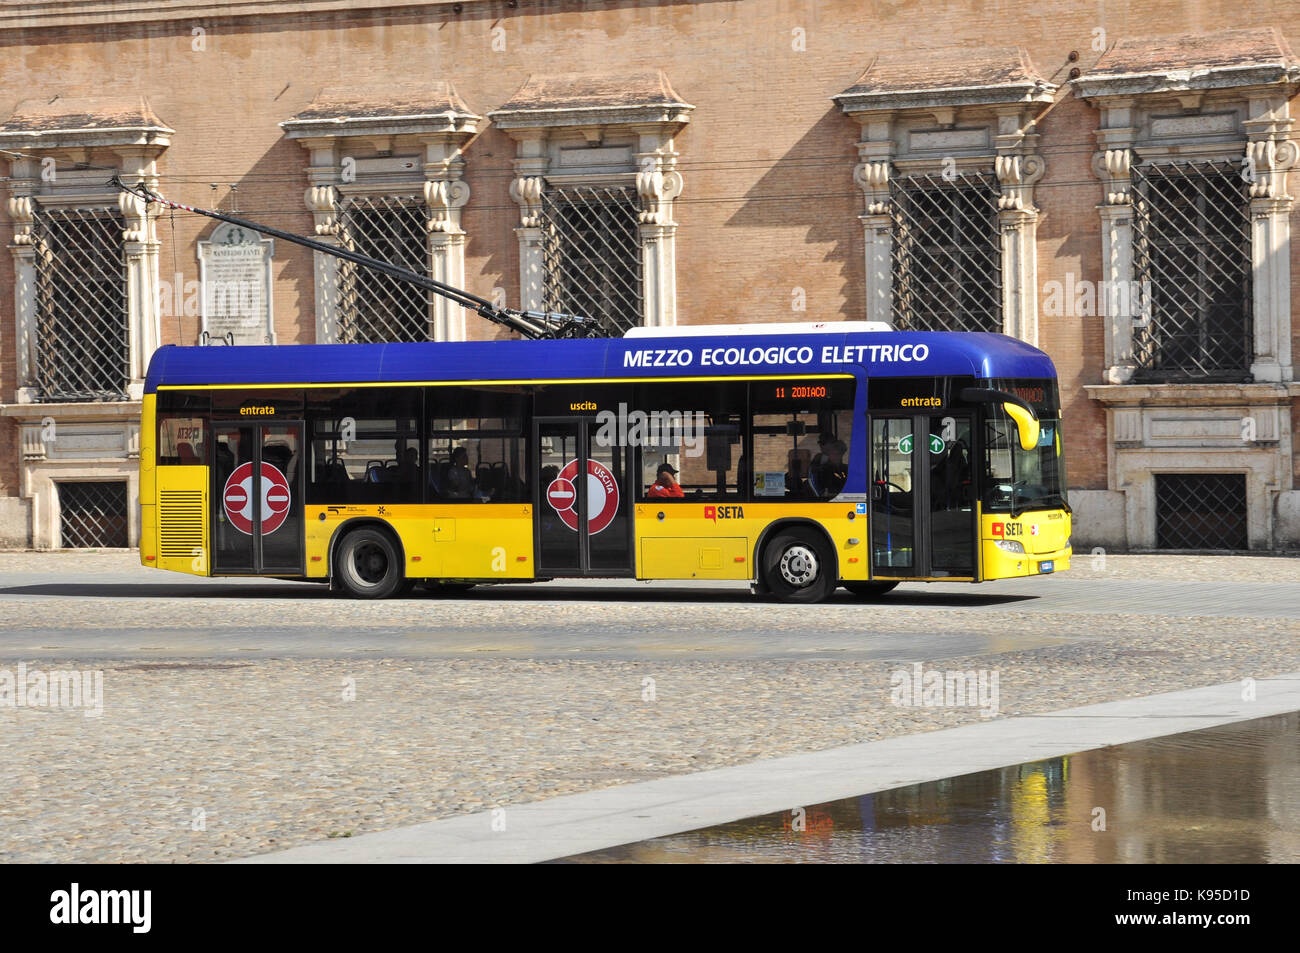 Trolleybus in front of Palazzo Ducale (Ducal Palace), Piazza Roma, Modena, Italy - Stock Image